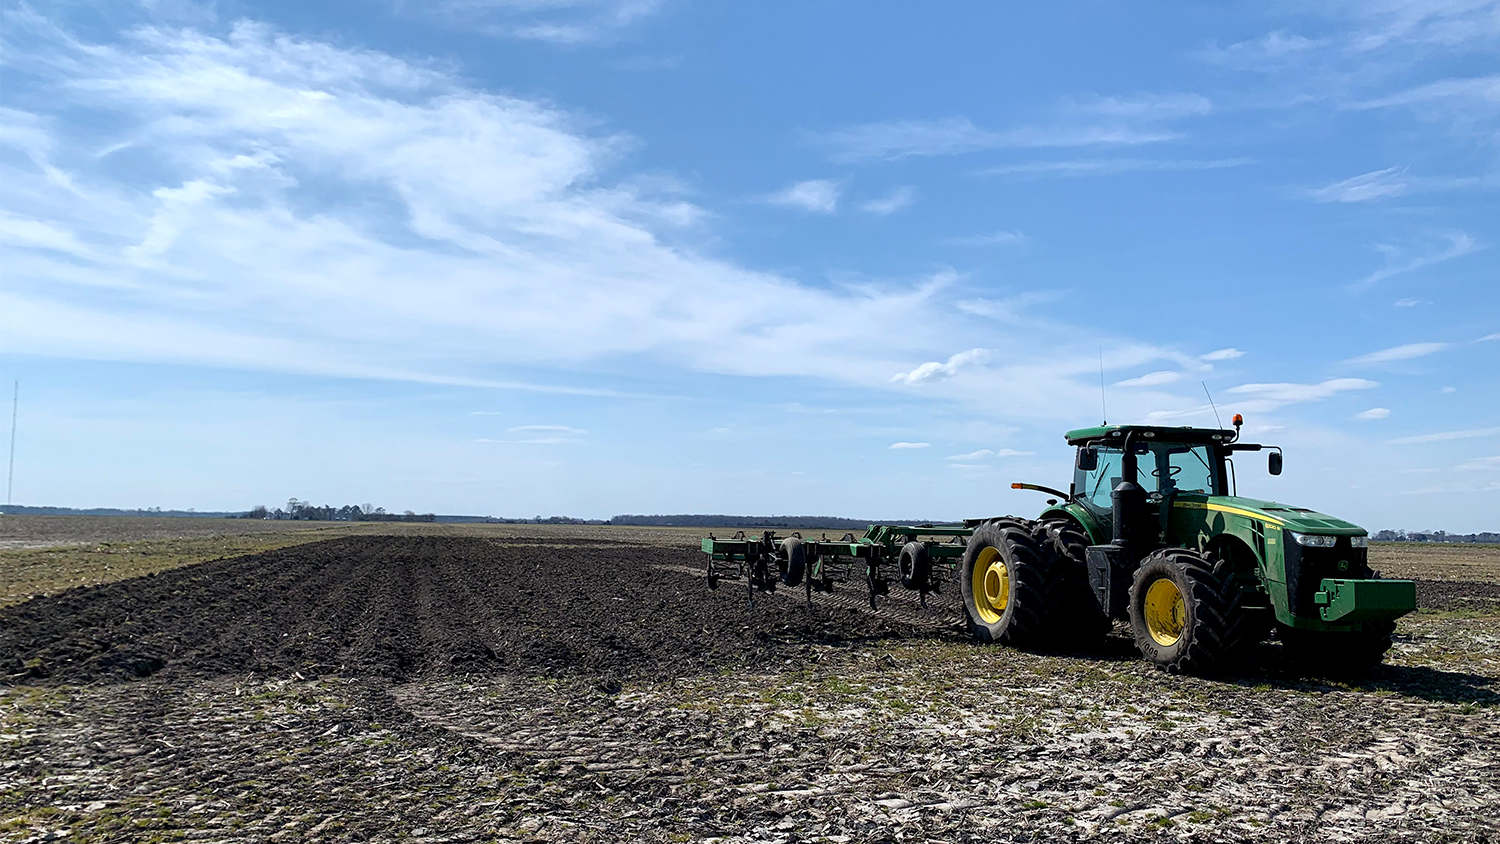 a green tractor pauses plowing an organic field